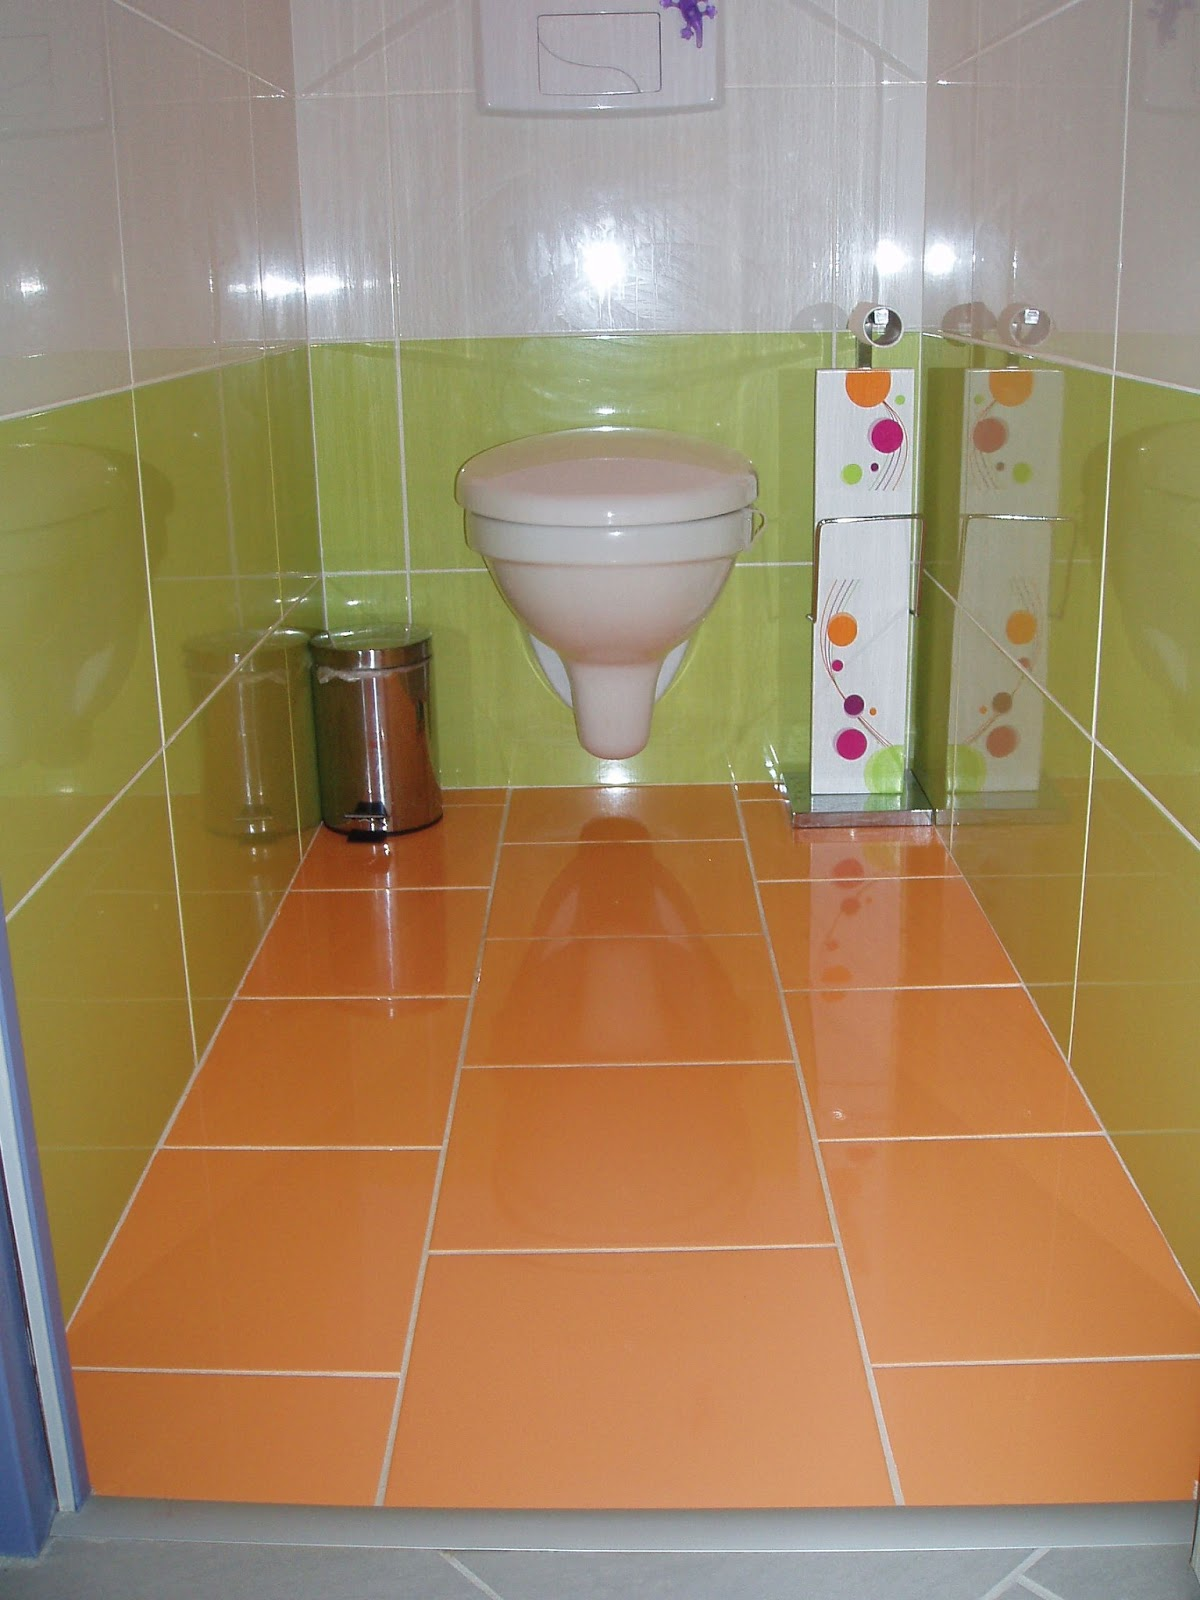 Univers maison carrelage wc et salle de bain for Modele carrelage toilette